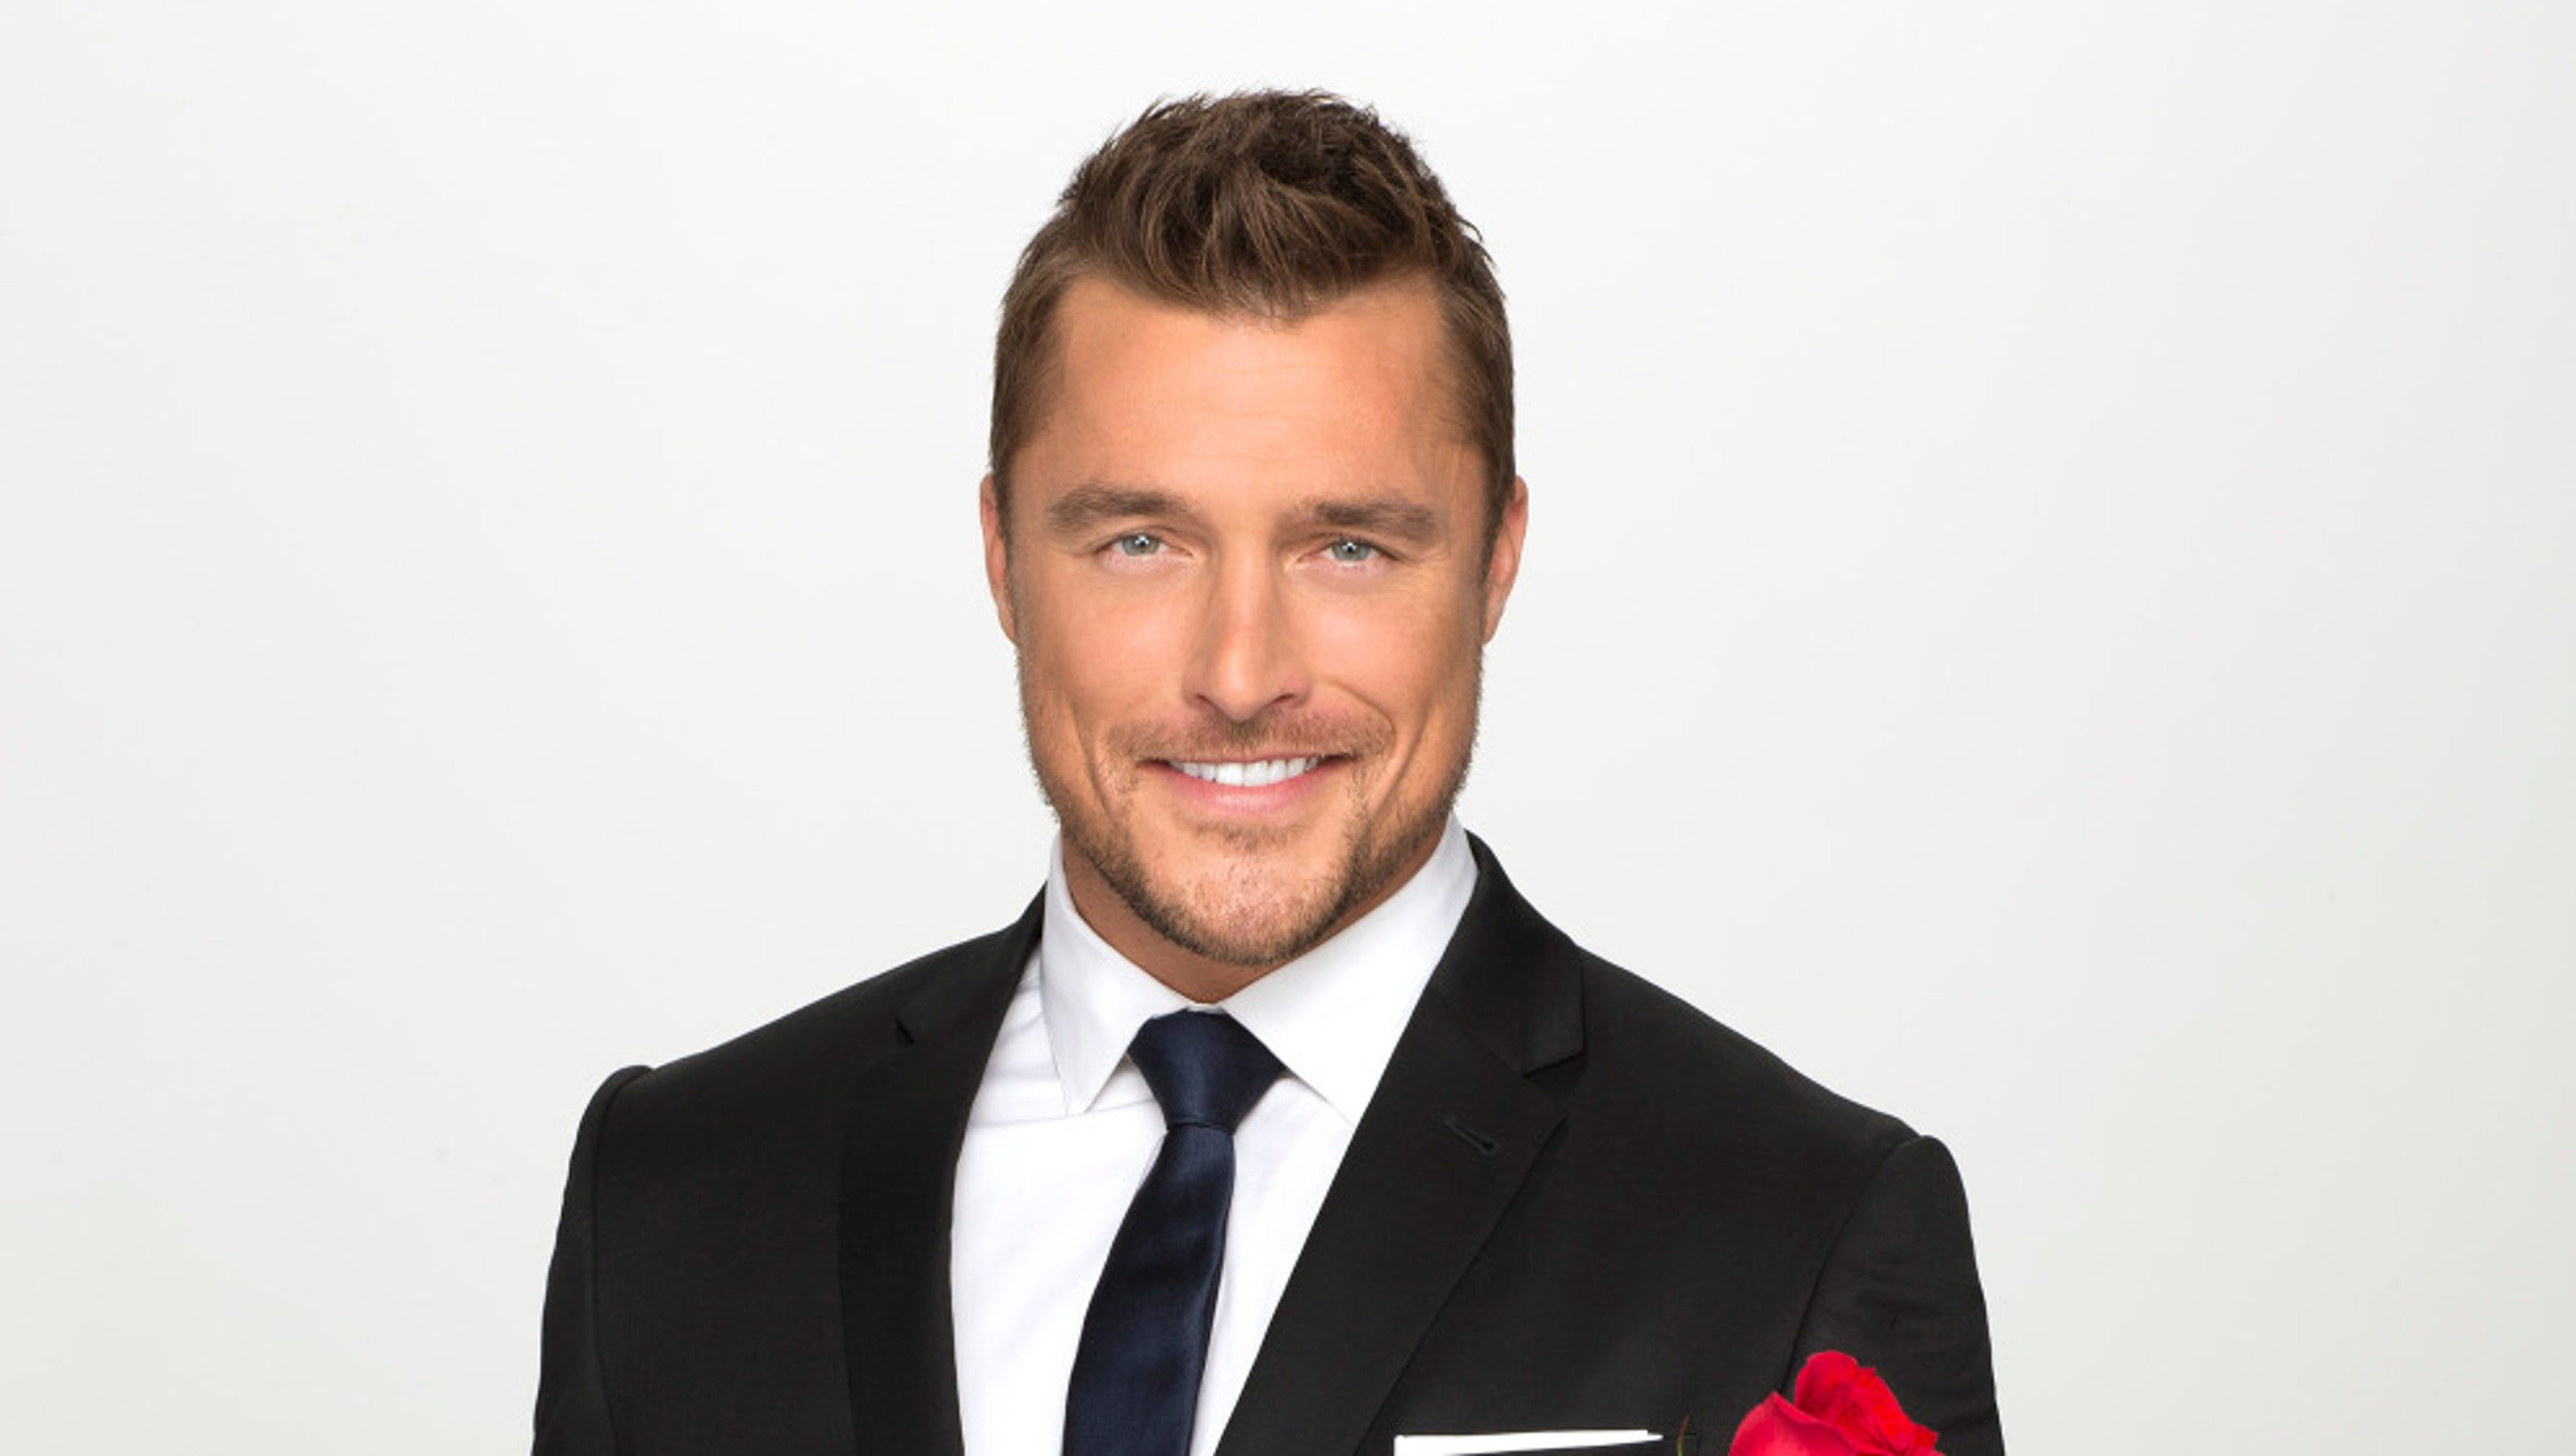 Spoiler alert! 'Bachelor' Chris says his 'head was spinning' after